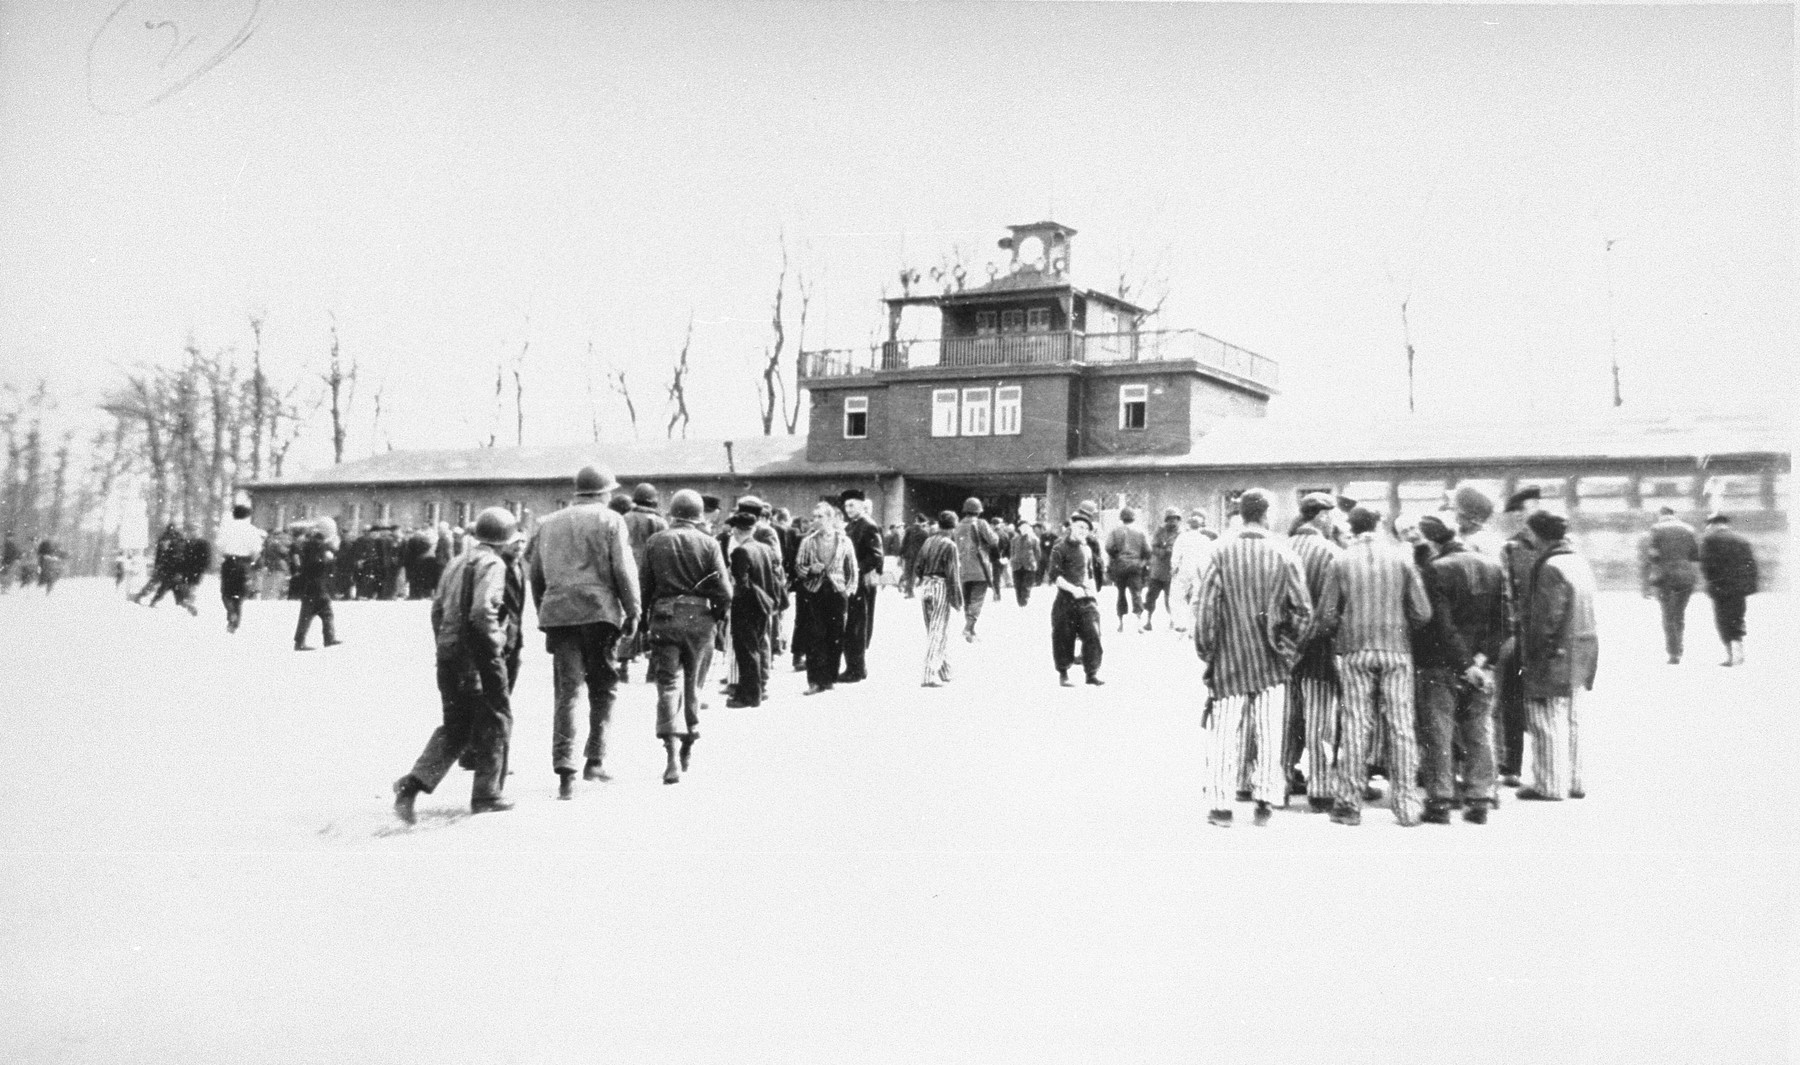 American soldiers and liberated prisoners on the Appellplatz (central plaza) of Buchenwald, behind the entrance of the camp.